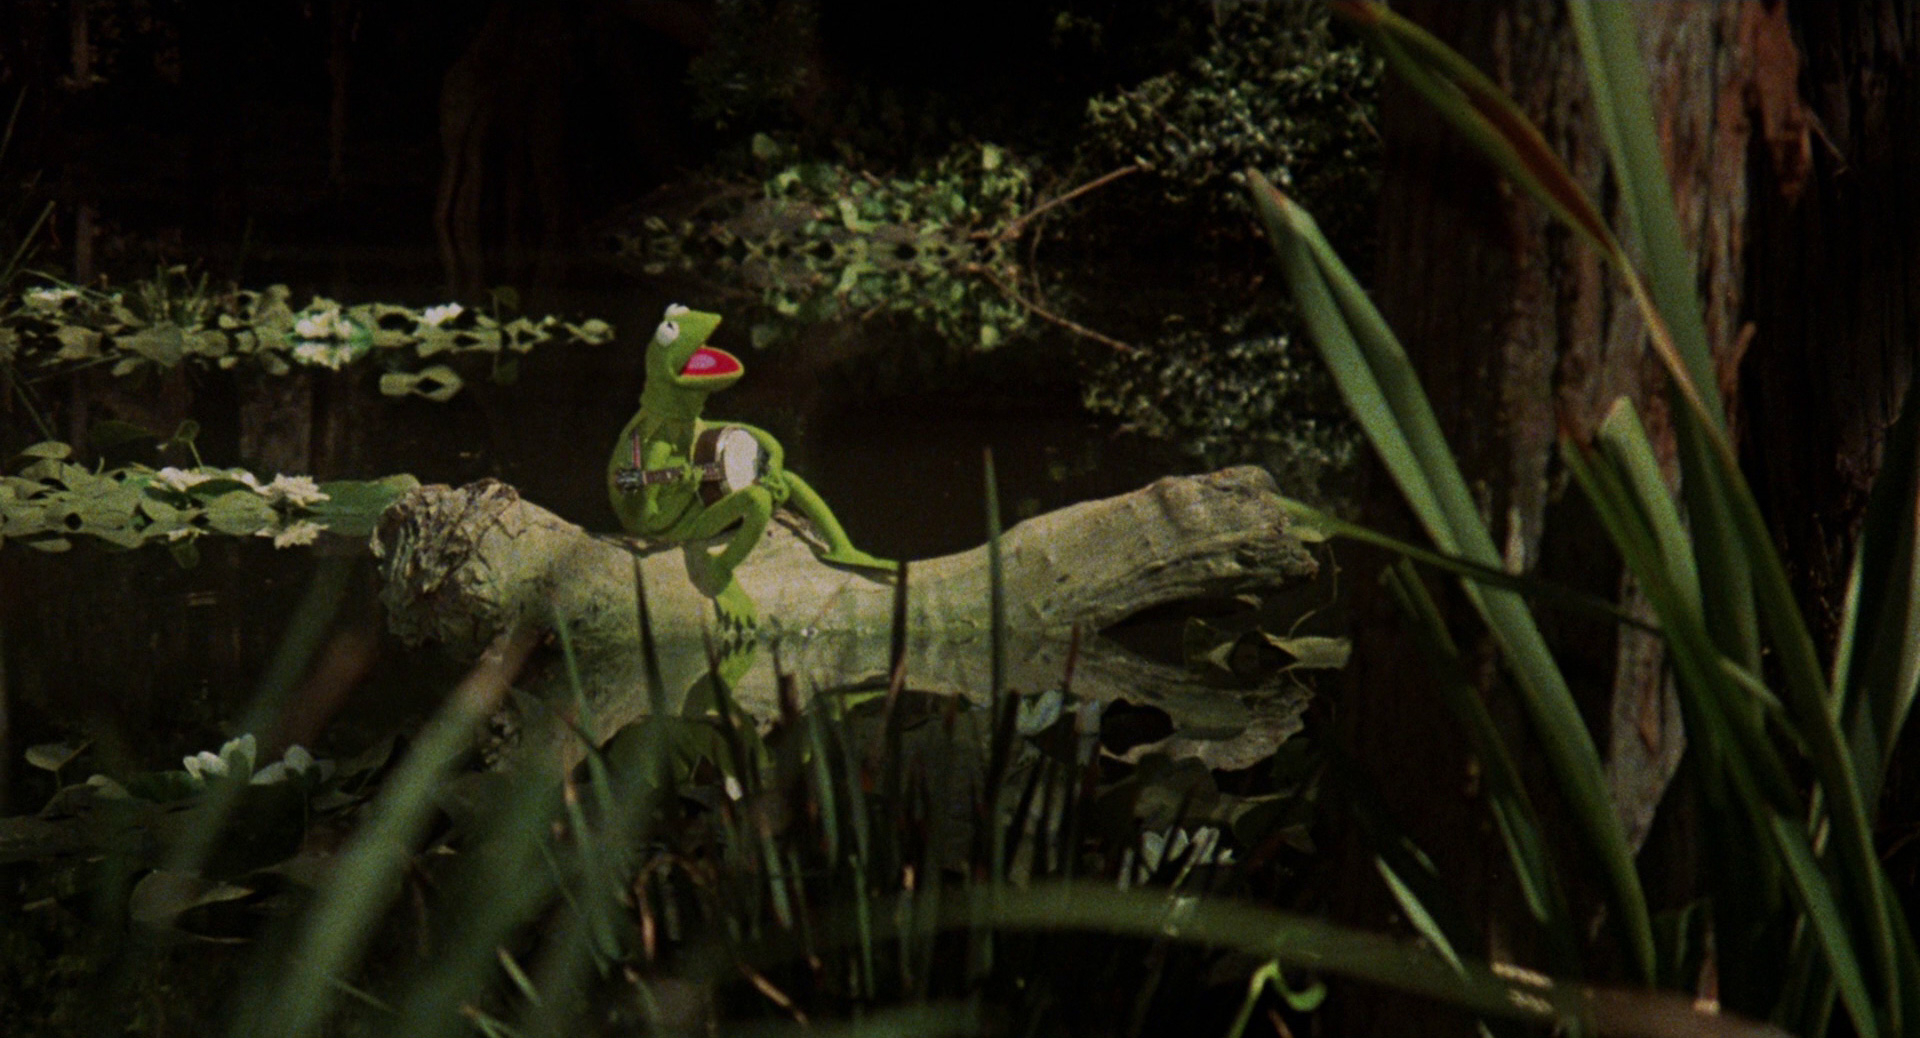 kermit sitting in his swamp and singing rainbow connection